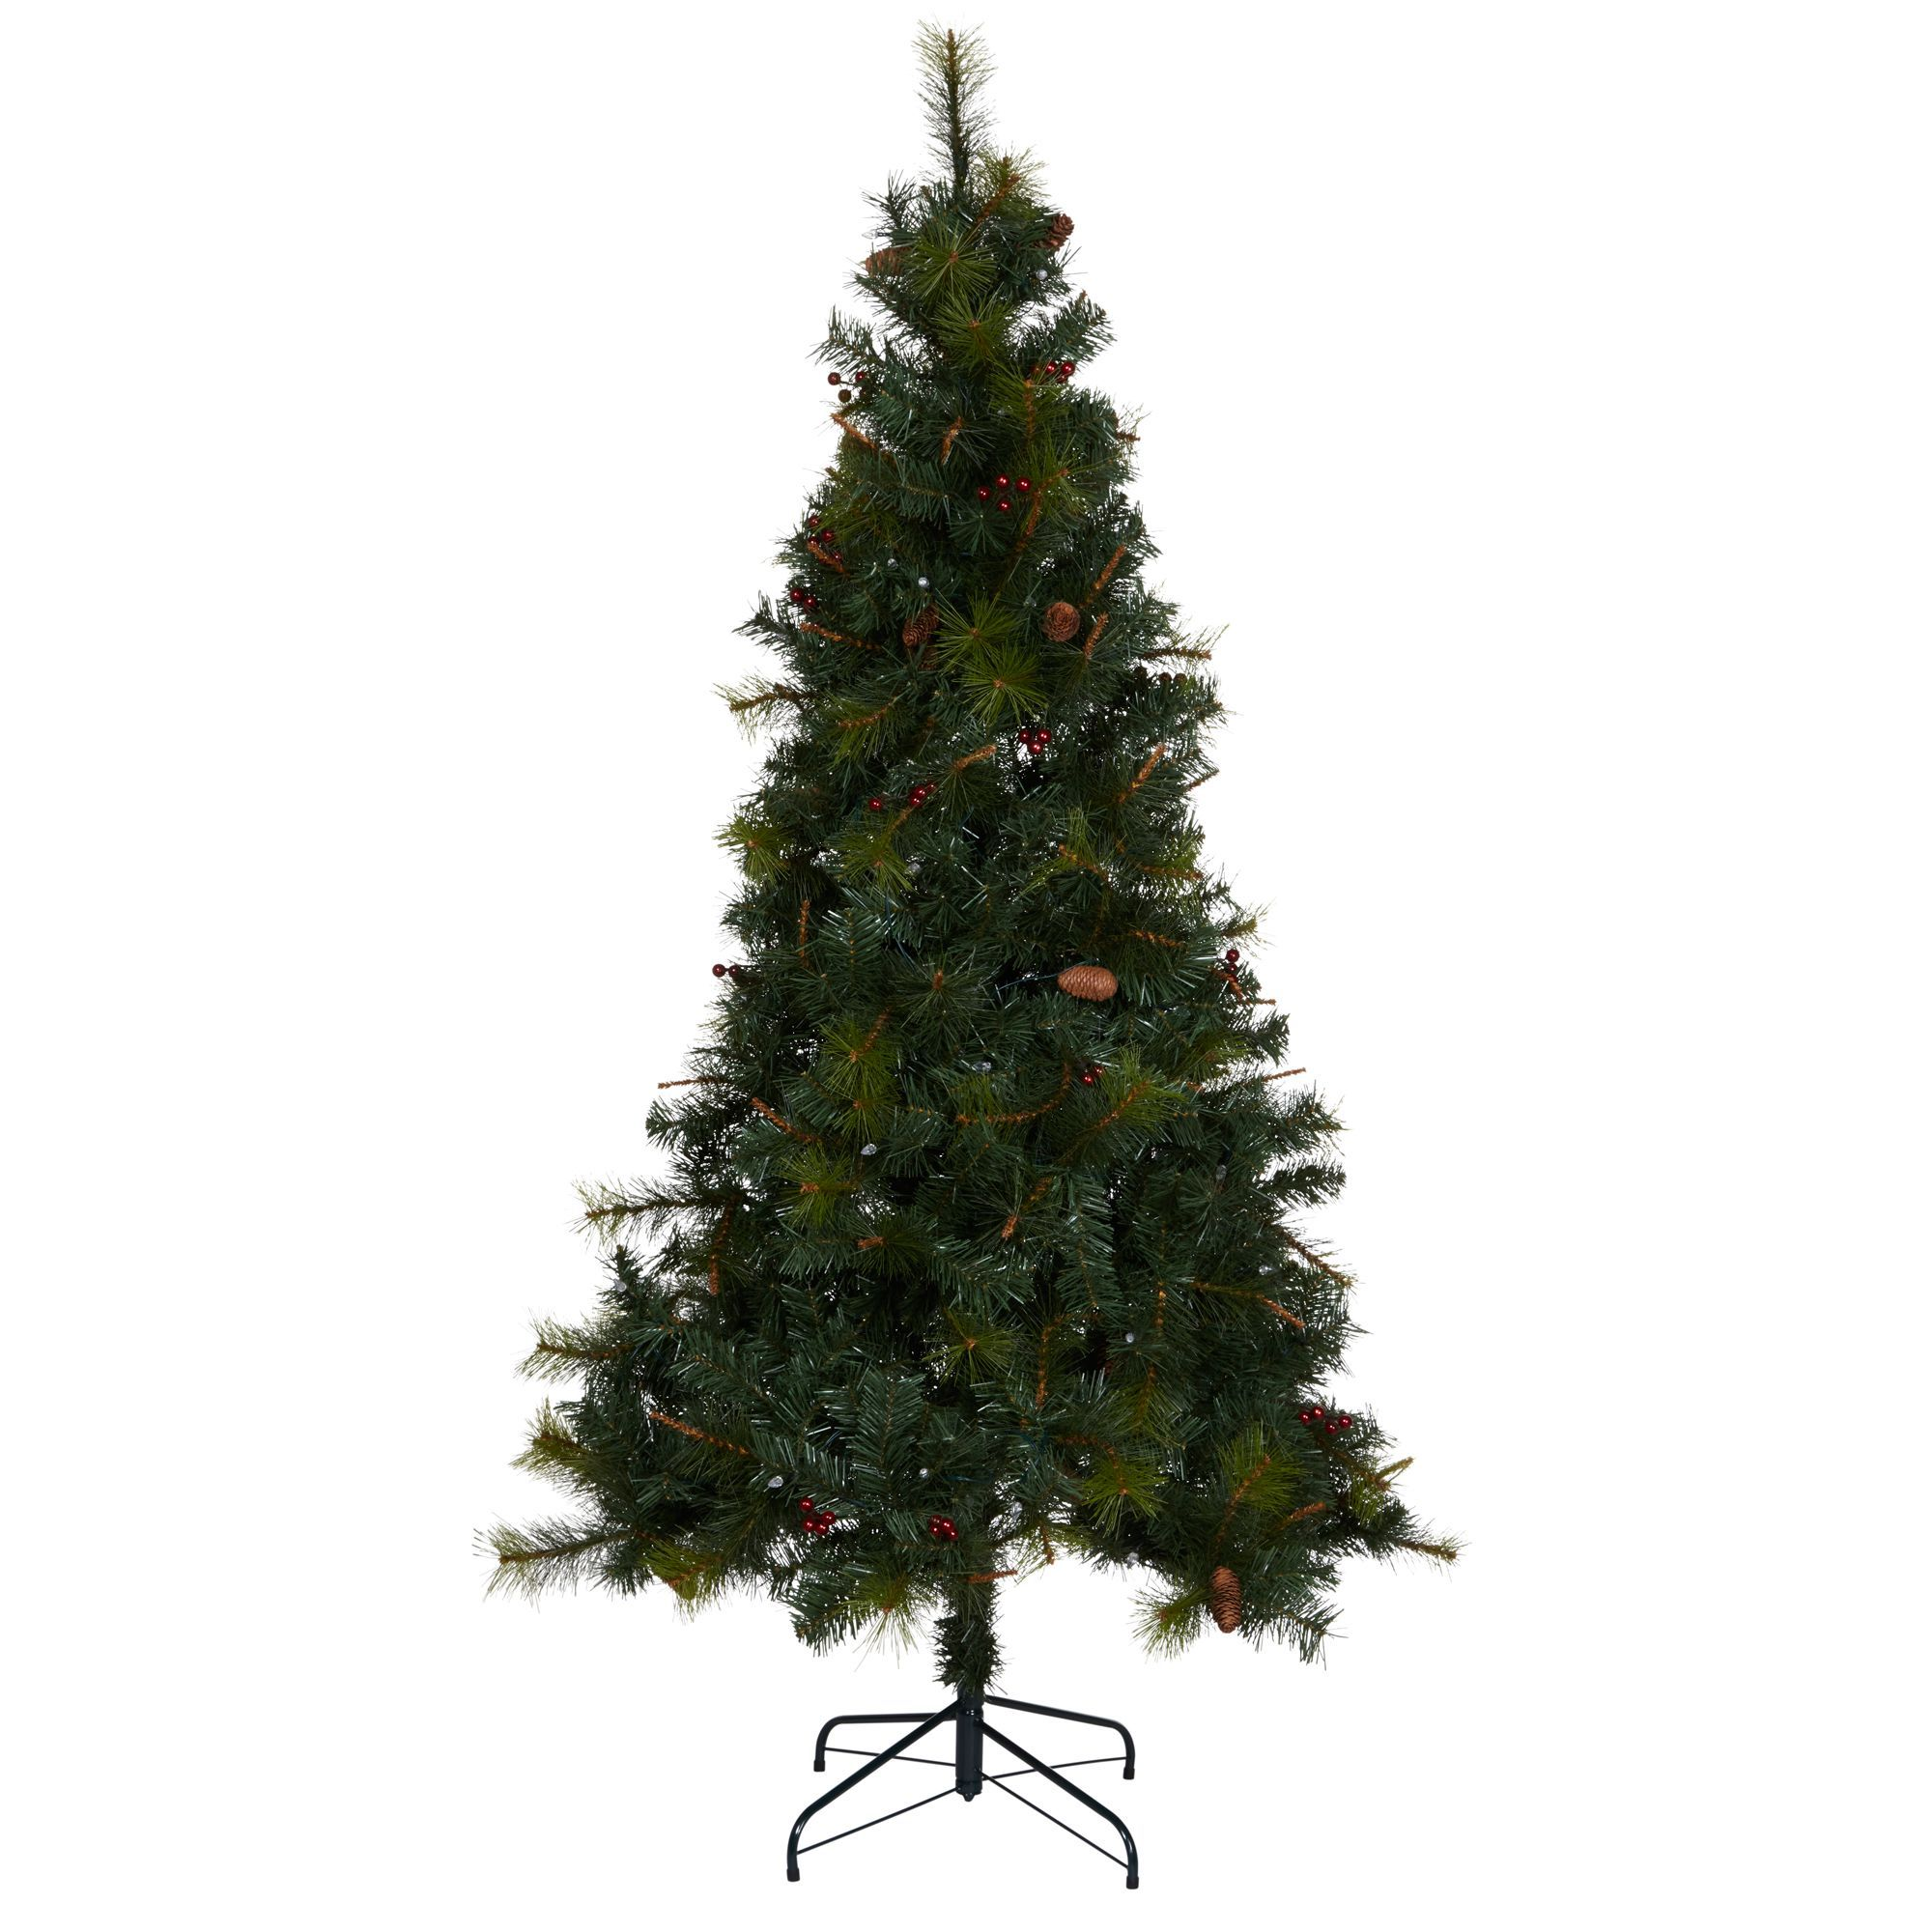 6ft 6In Columbia Pre-Lit Christmas Tree   Departments   DIY at B&Q